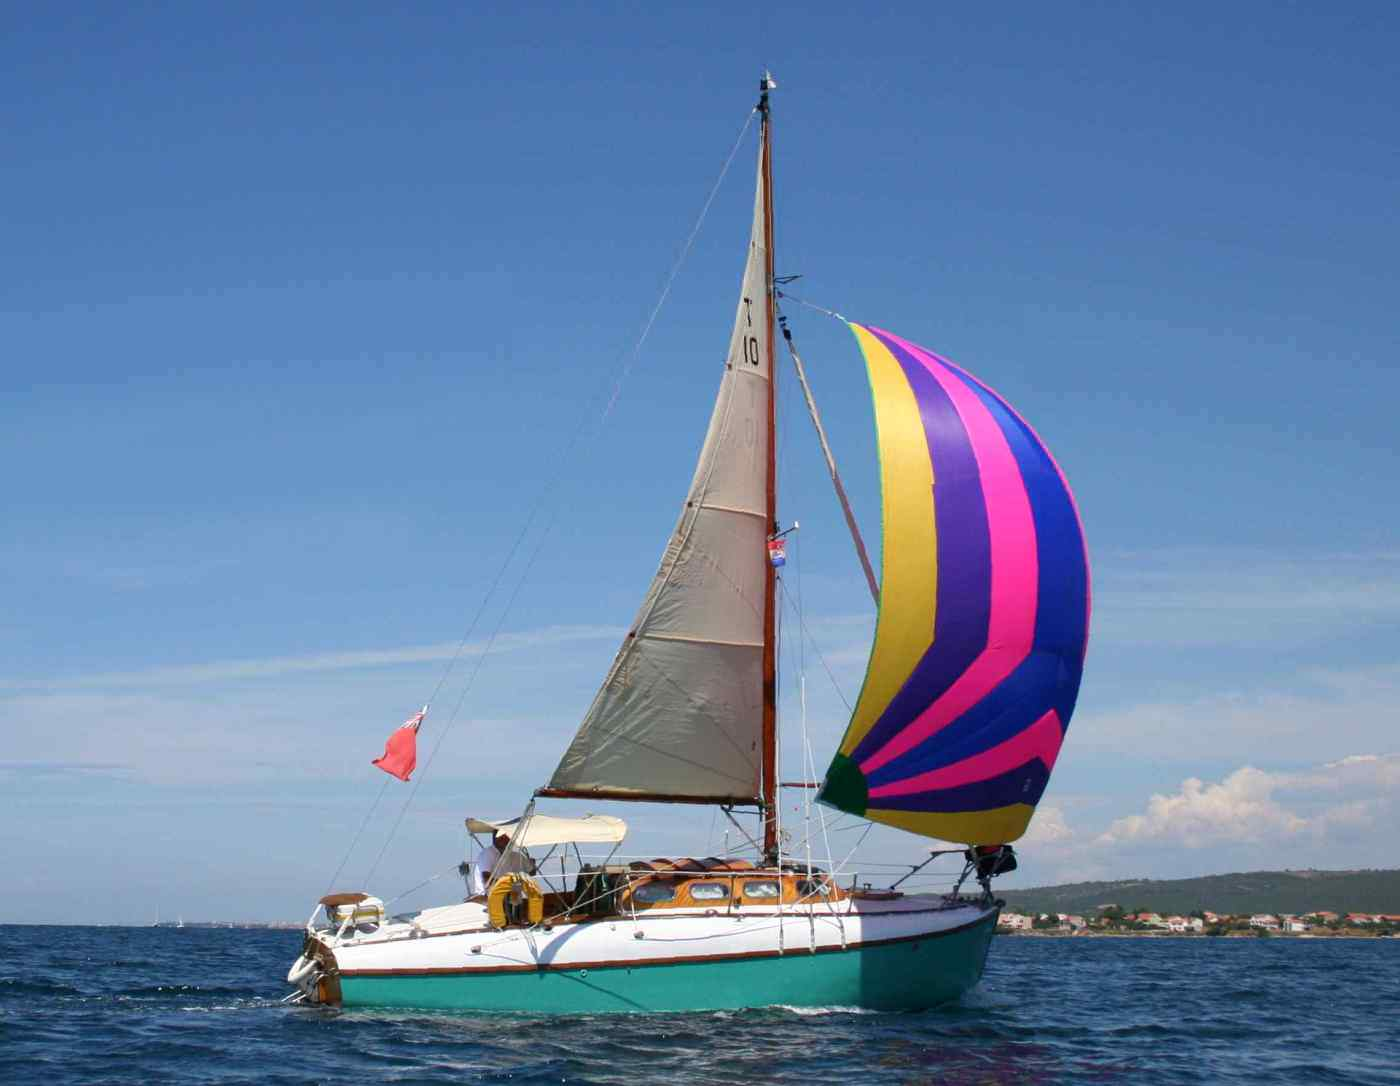 2013 T10 Callista under spinnaker in Croatia